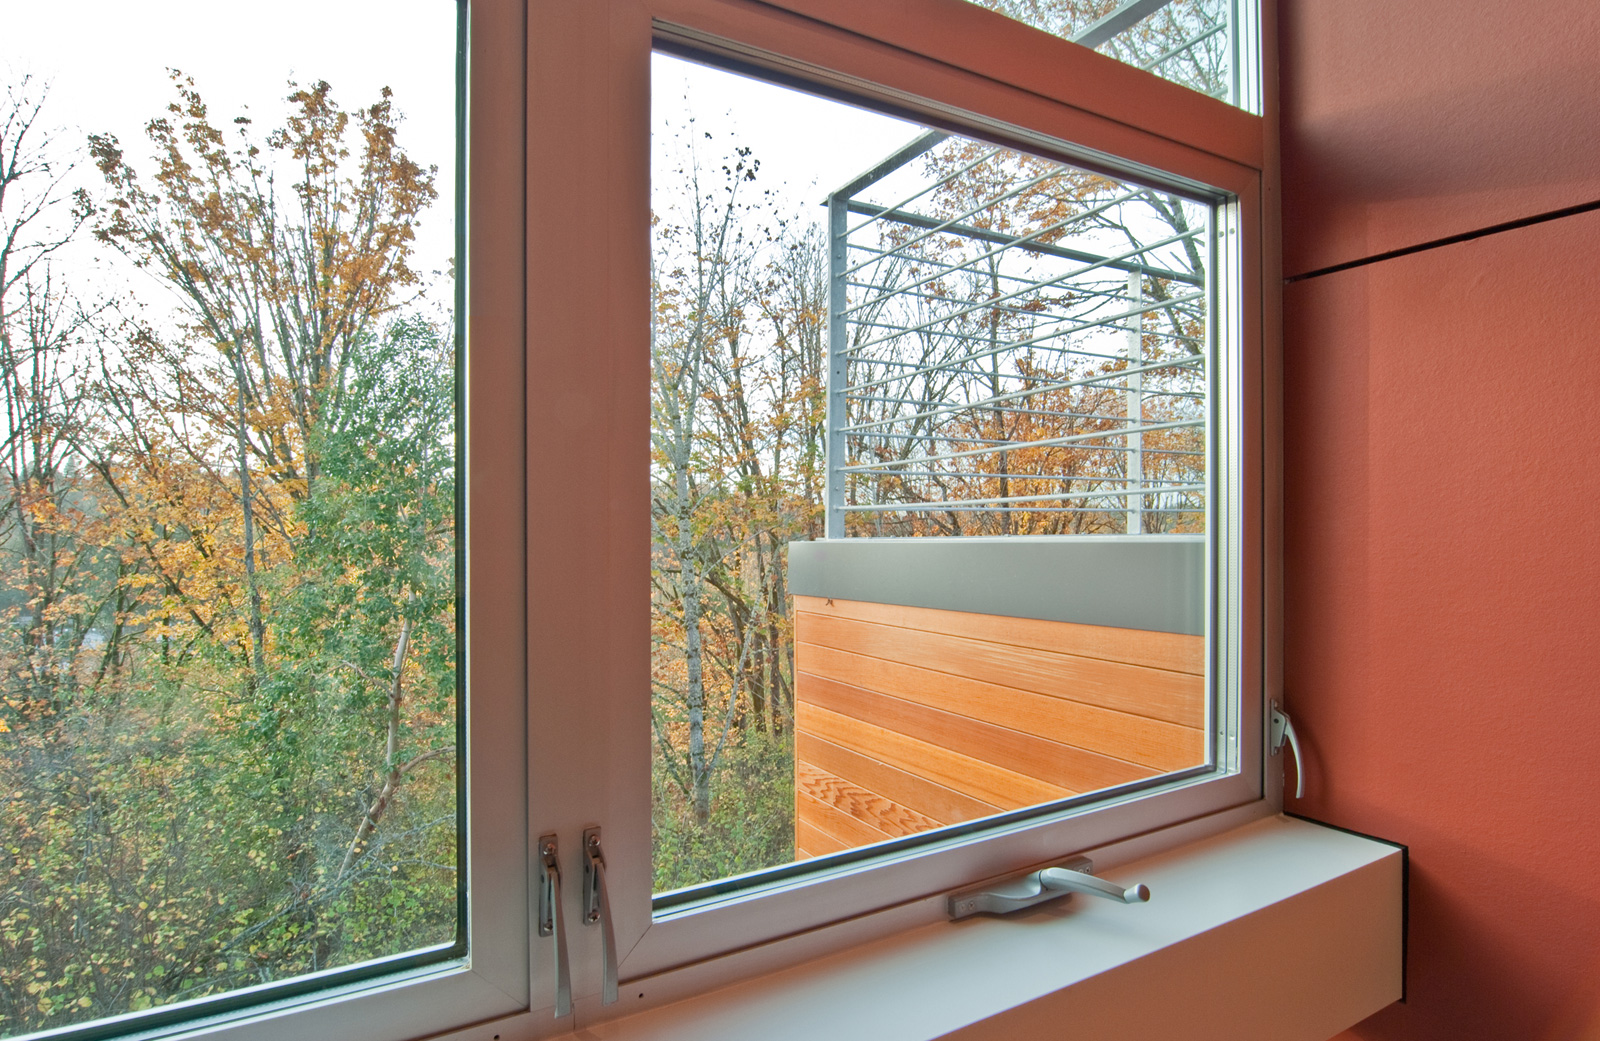 Top 10 things to know about aluminum windows build blog for 2 pane window